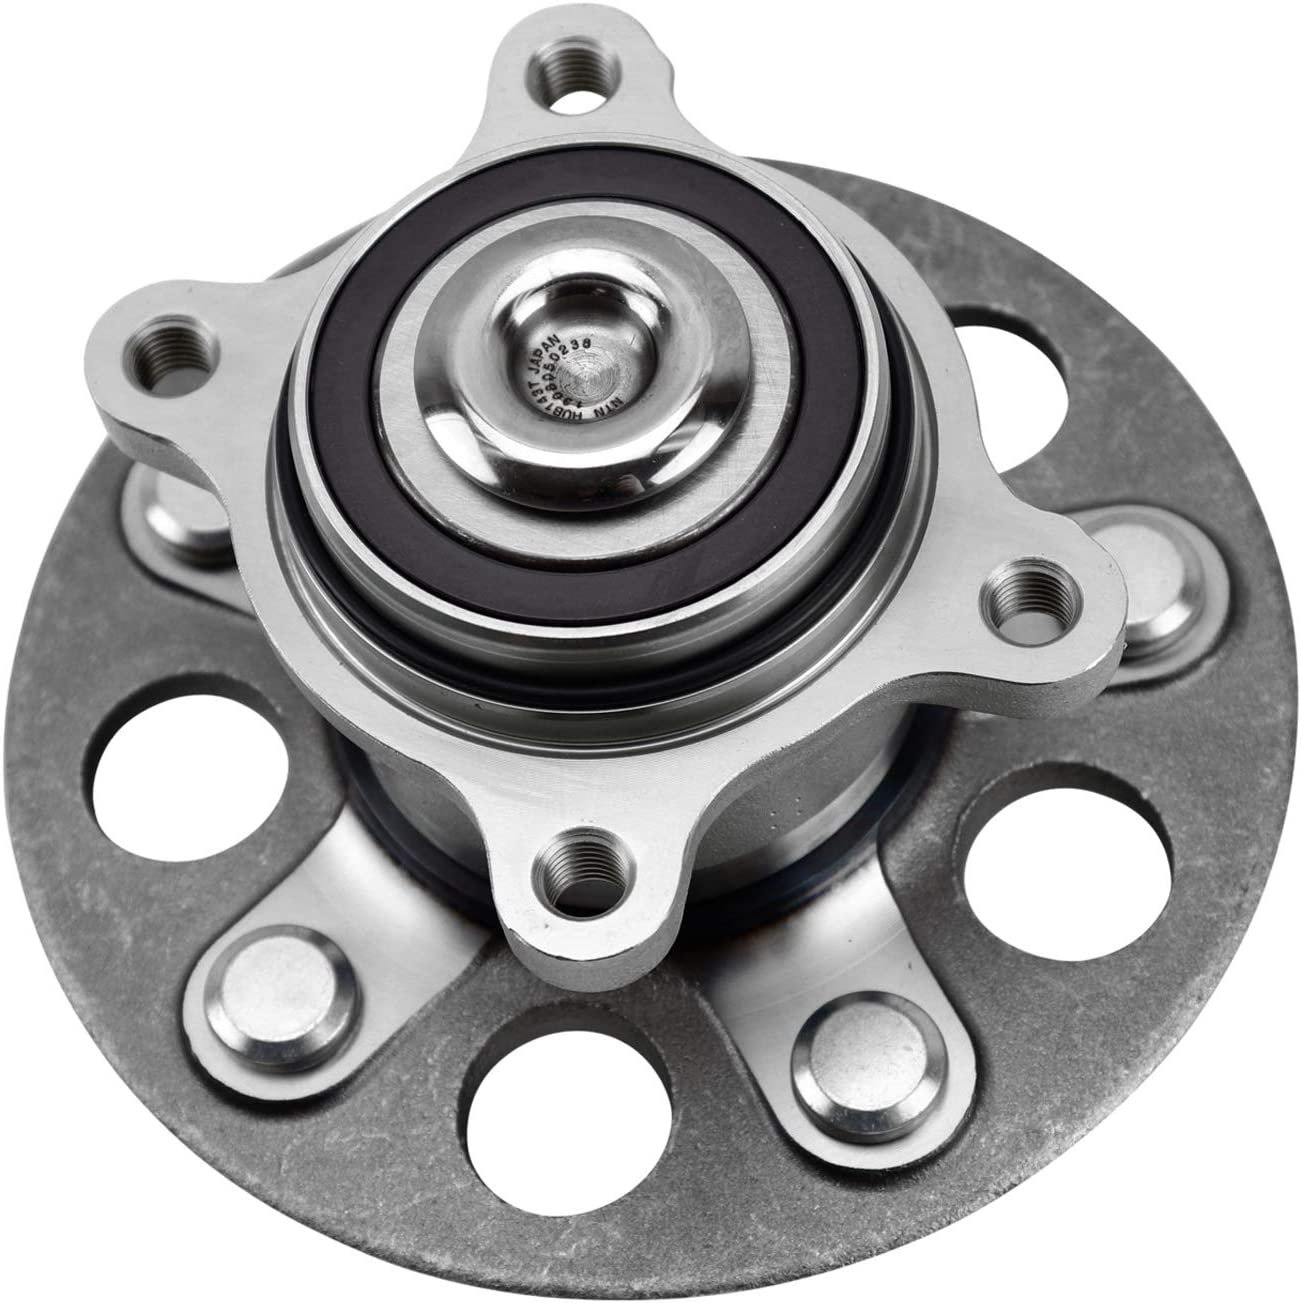 Beck Arnley Time sale 051-6395 Hub Assembly OFFer Bearing and